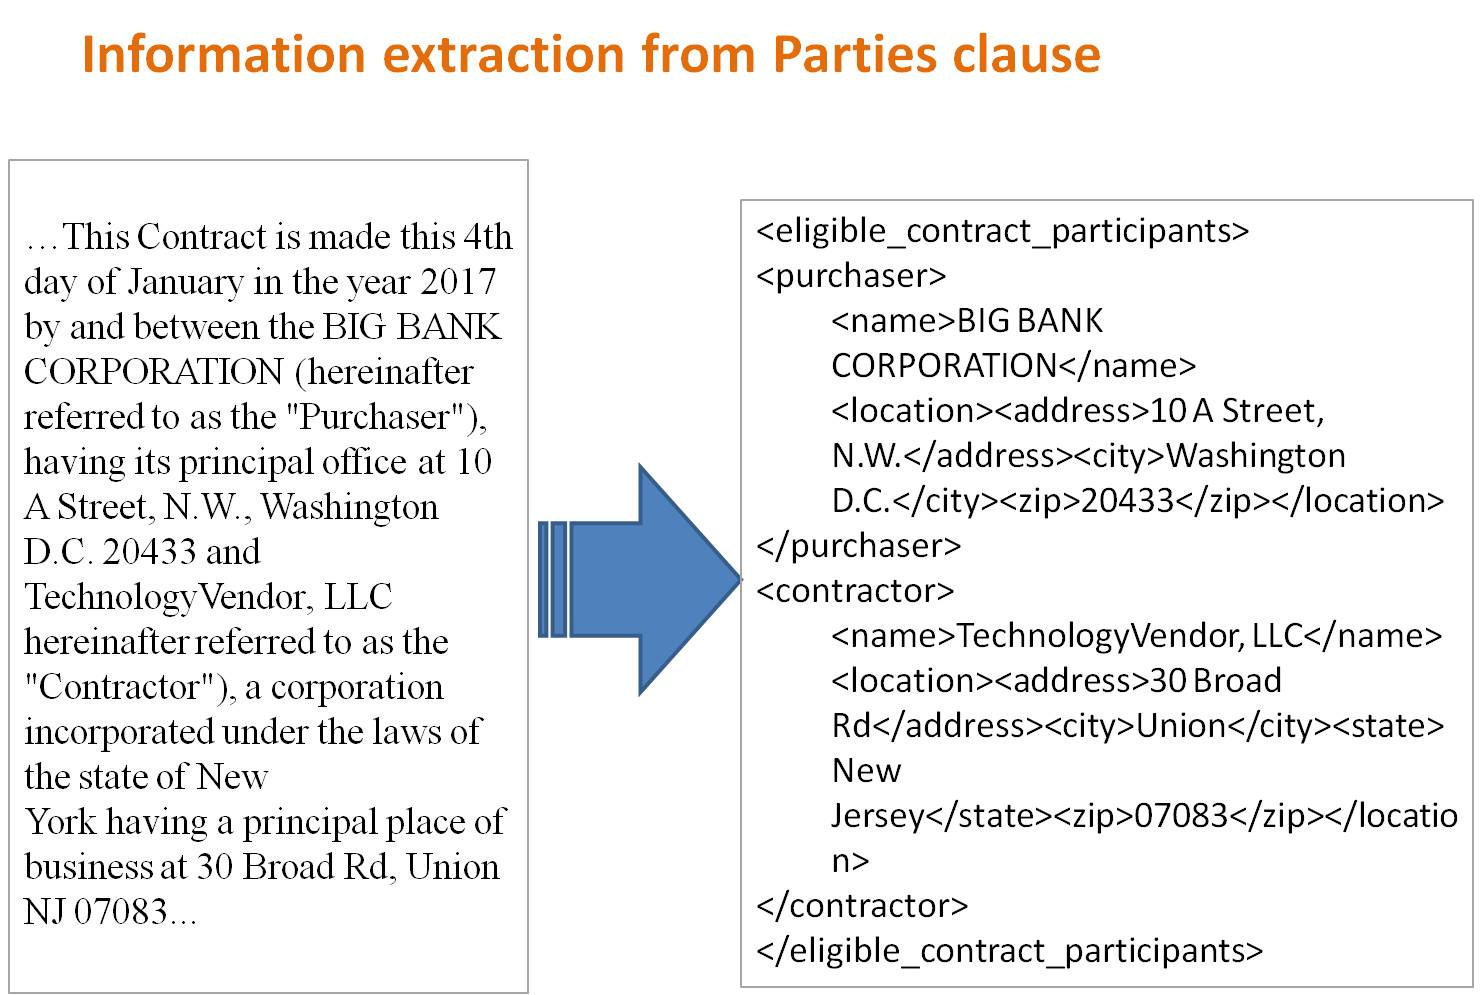 Information extraction from Parties clause